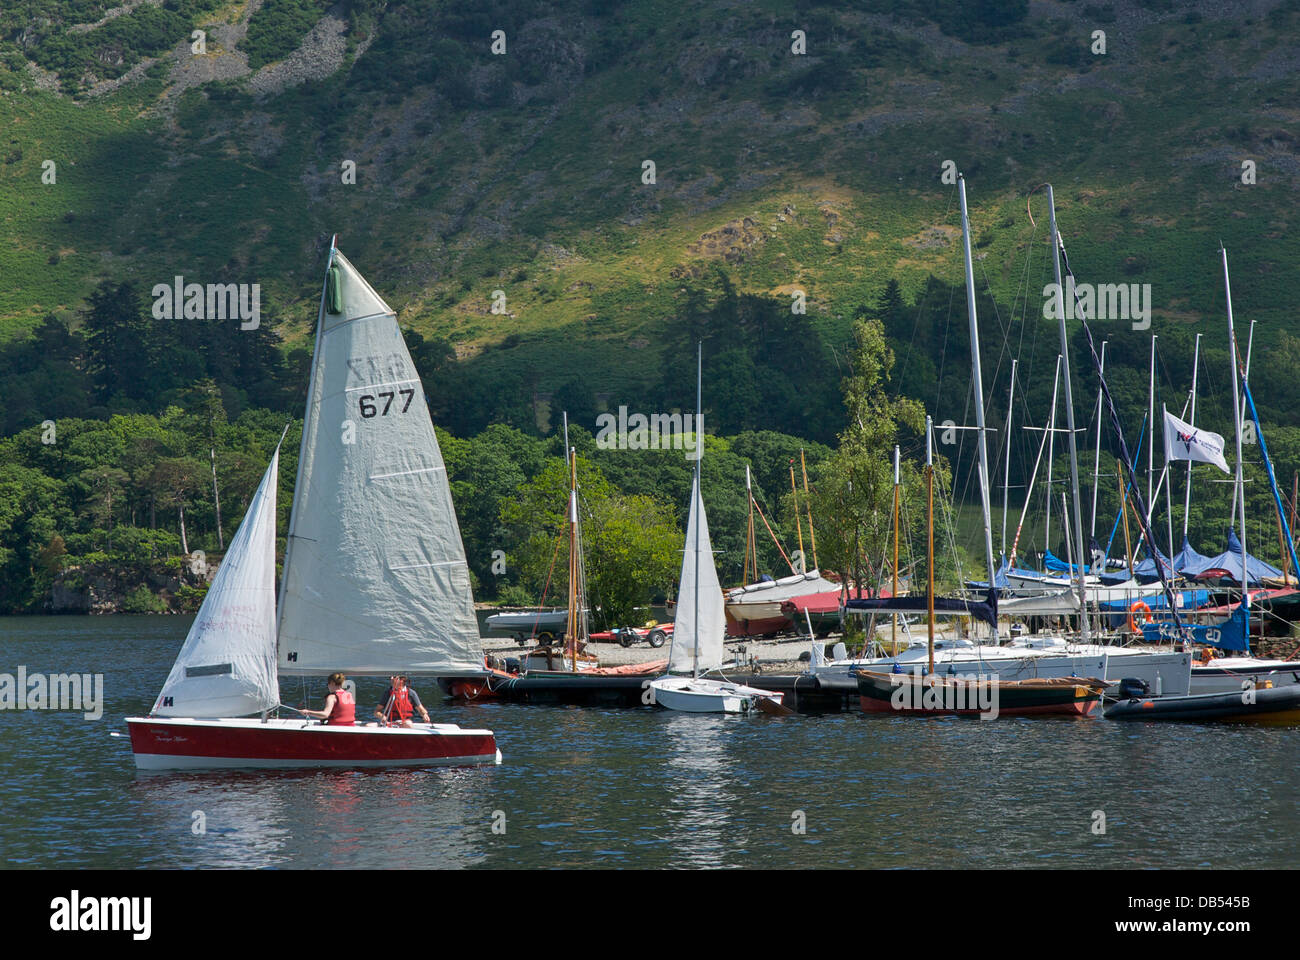 Sailing boat and Glenridding Sailing Club, Ullswater, Lake District National Park, Cumbria, England UK - Stock Image